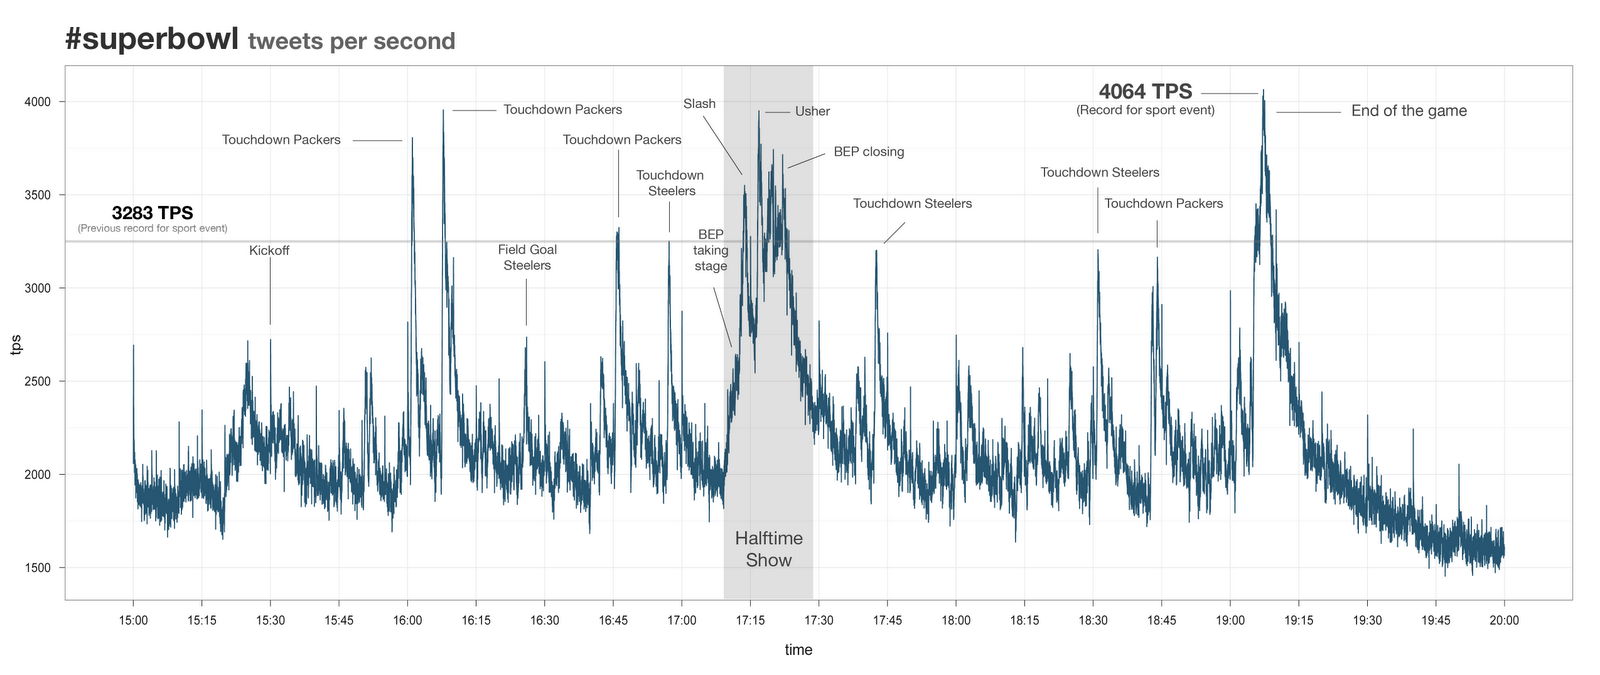 Tweets per second - #superbowl 2011